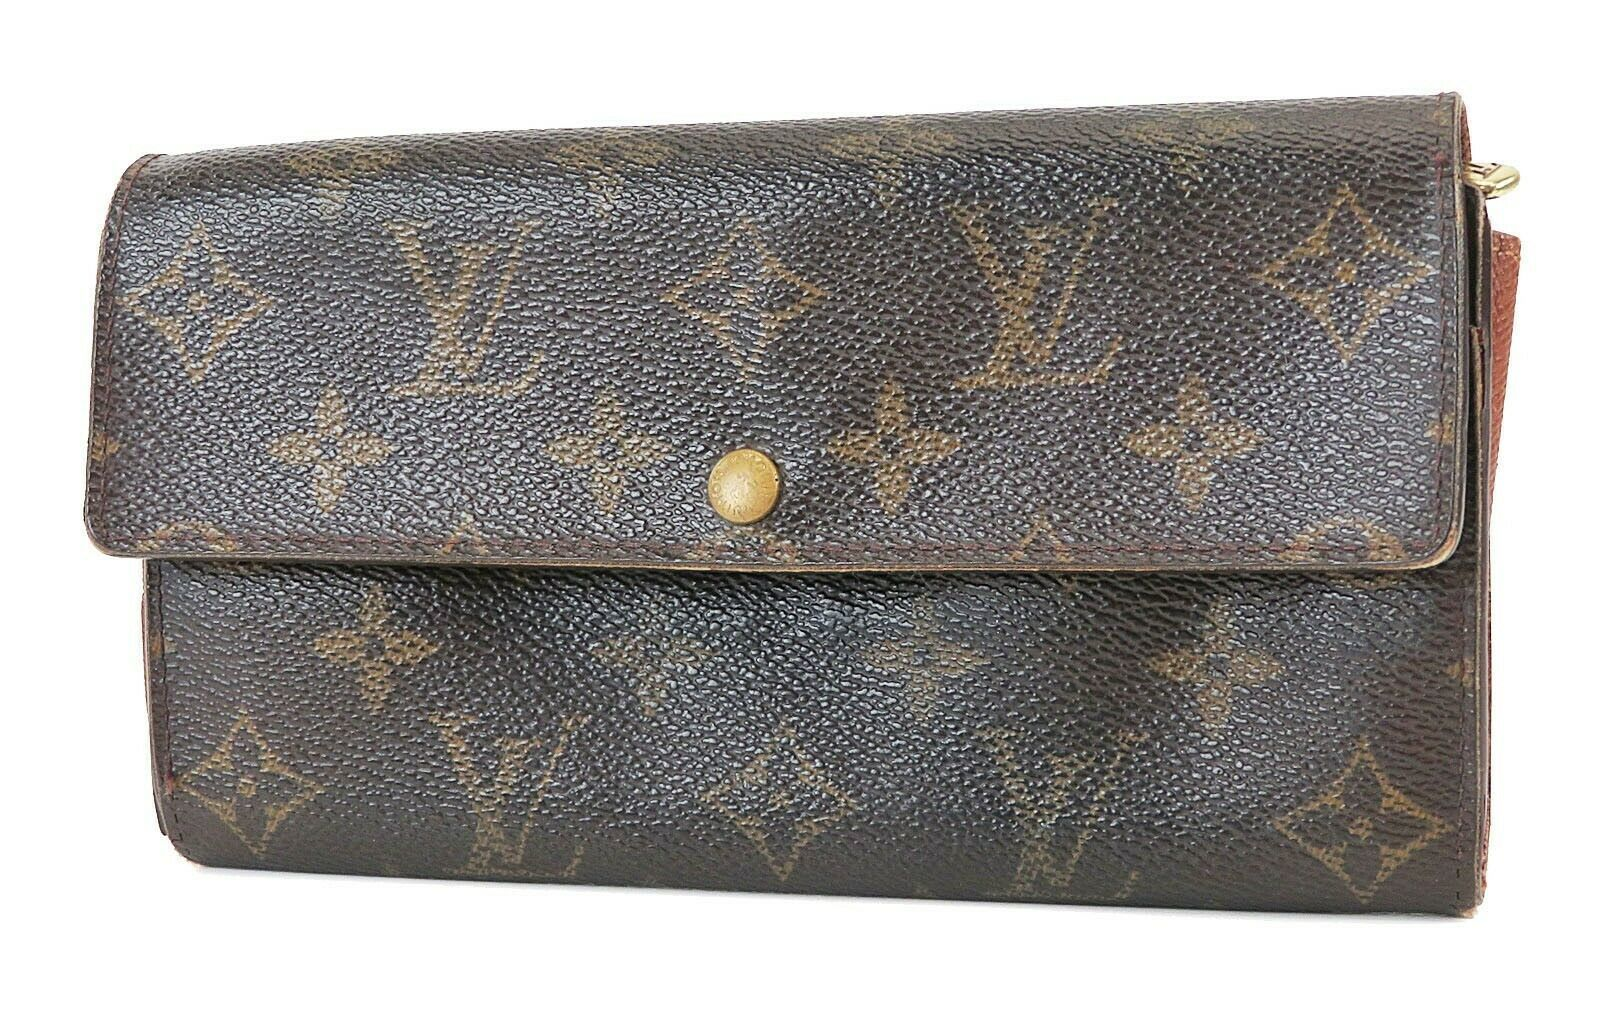 Primary image for Authentic LOUIS VUITTON Sarah Long Wallet Monogram Zippered Coin Purse #38155